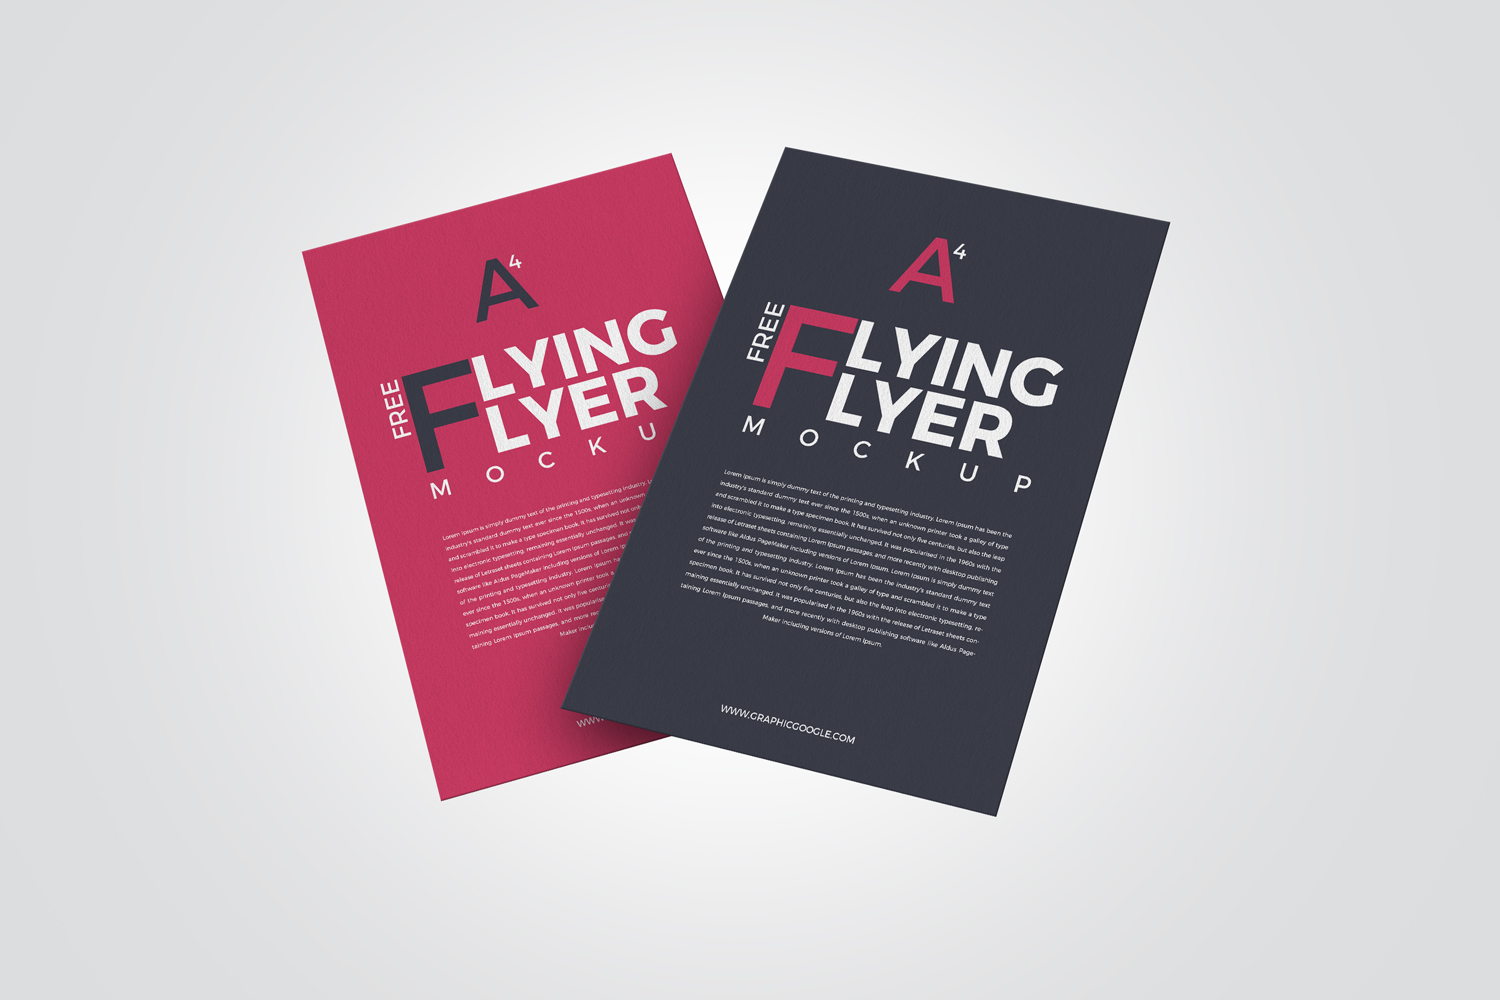 Free-2-Flying-Flyer-Mockup-Preview